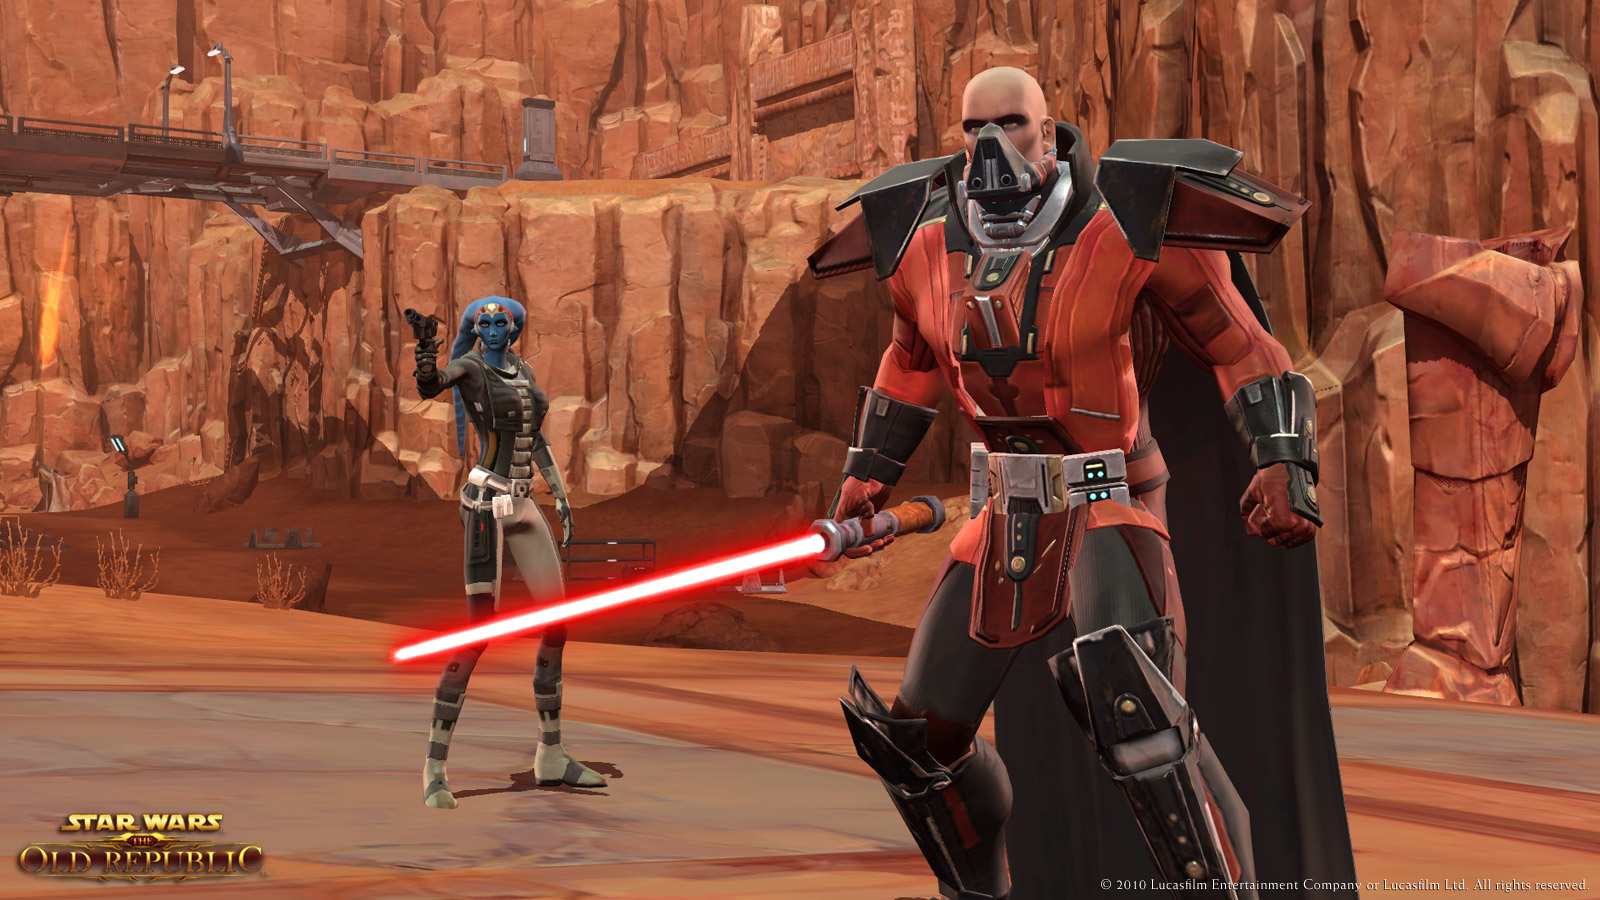 Star Wars the Old Republic Sith screenshot